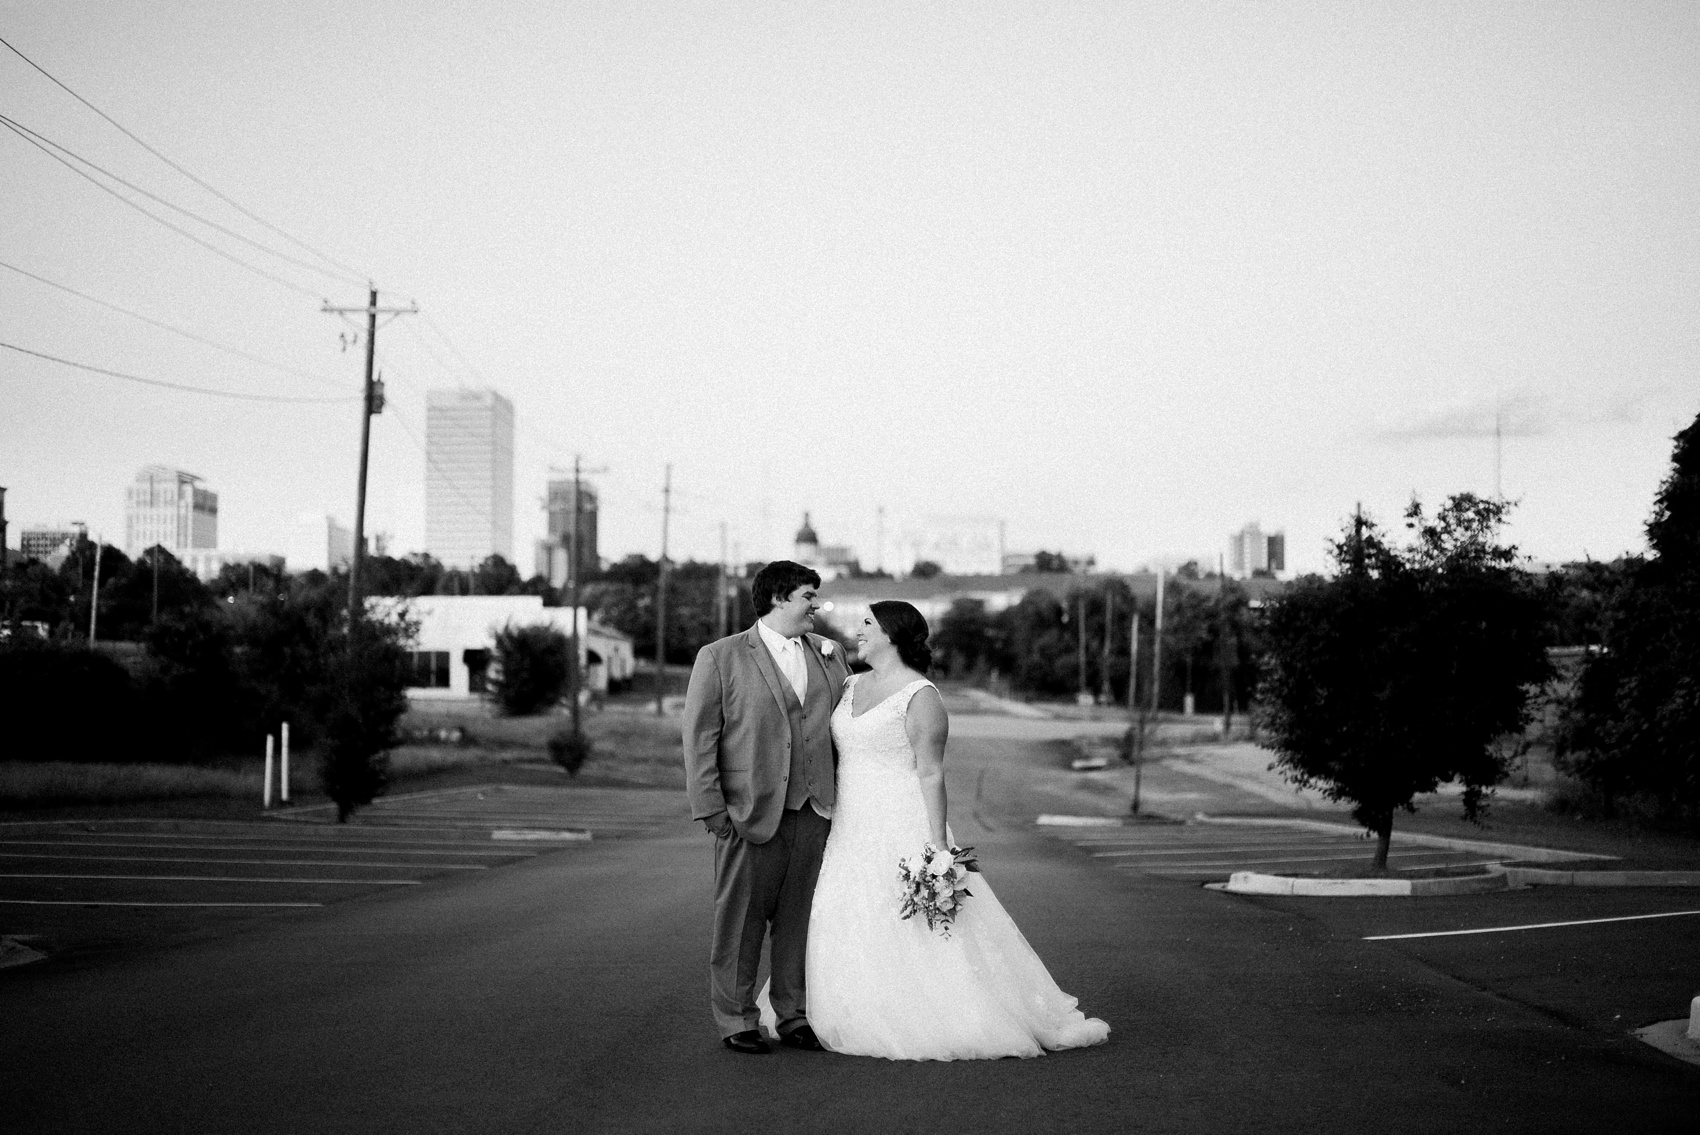 columbia_wedding_photographer_0332.jpg